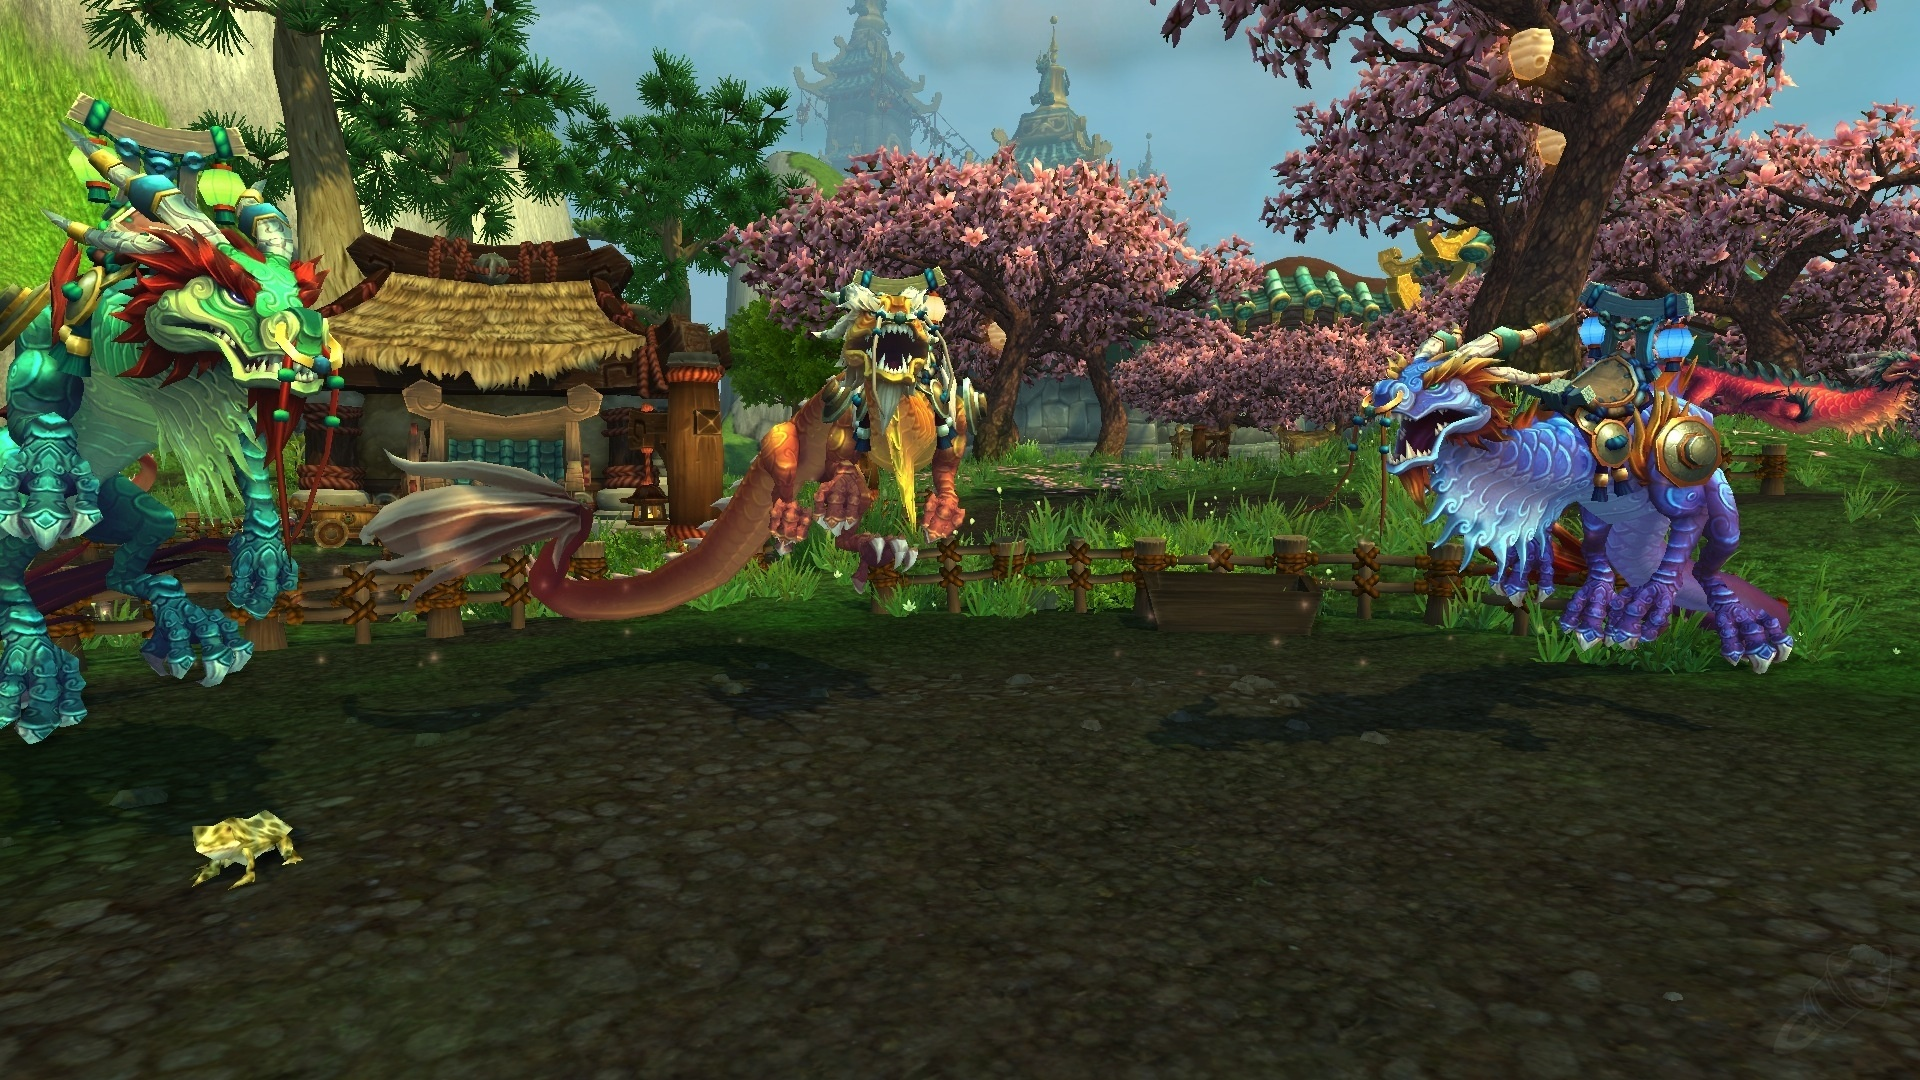 OF 5.0.5 WORLD TÉLÉCHARGER WARCRAFT PANDARIA OF MISTS